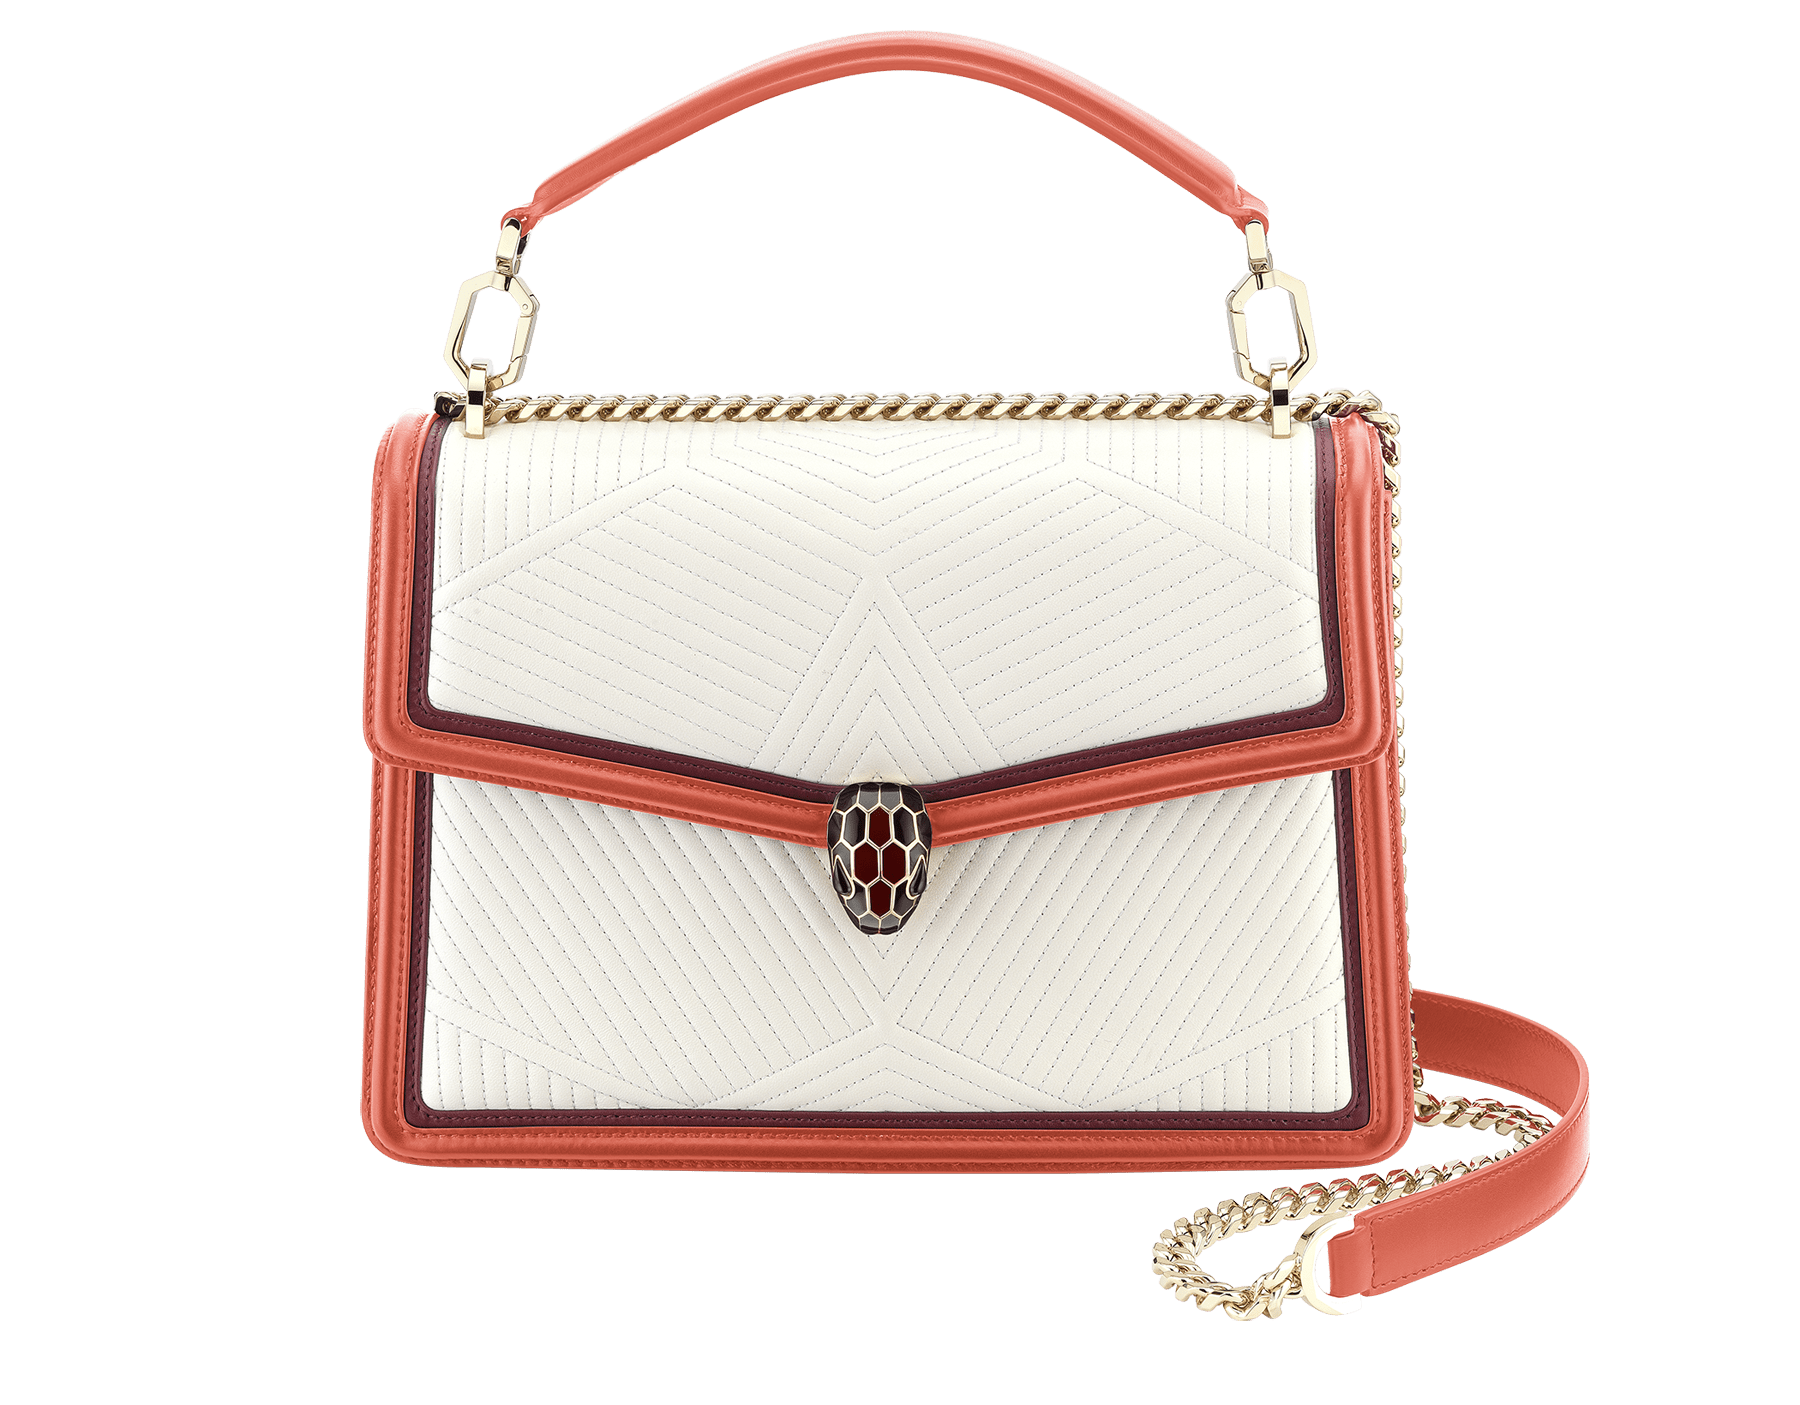 Serpenti Diamond Blast shoulder bag in white agate quilted nappa leather and imperial topaz with Roman garnet calf leather frames. Iconic snakehead closure in light gold plated brass embellished with Roman garnet and black enamel and black onyx eyes. 288840 image 1